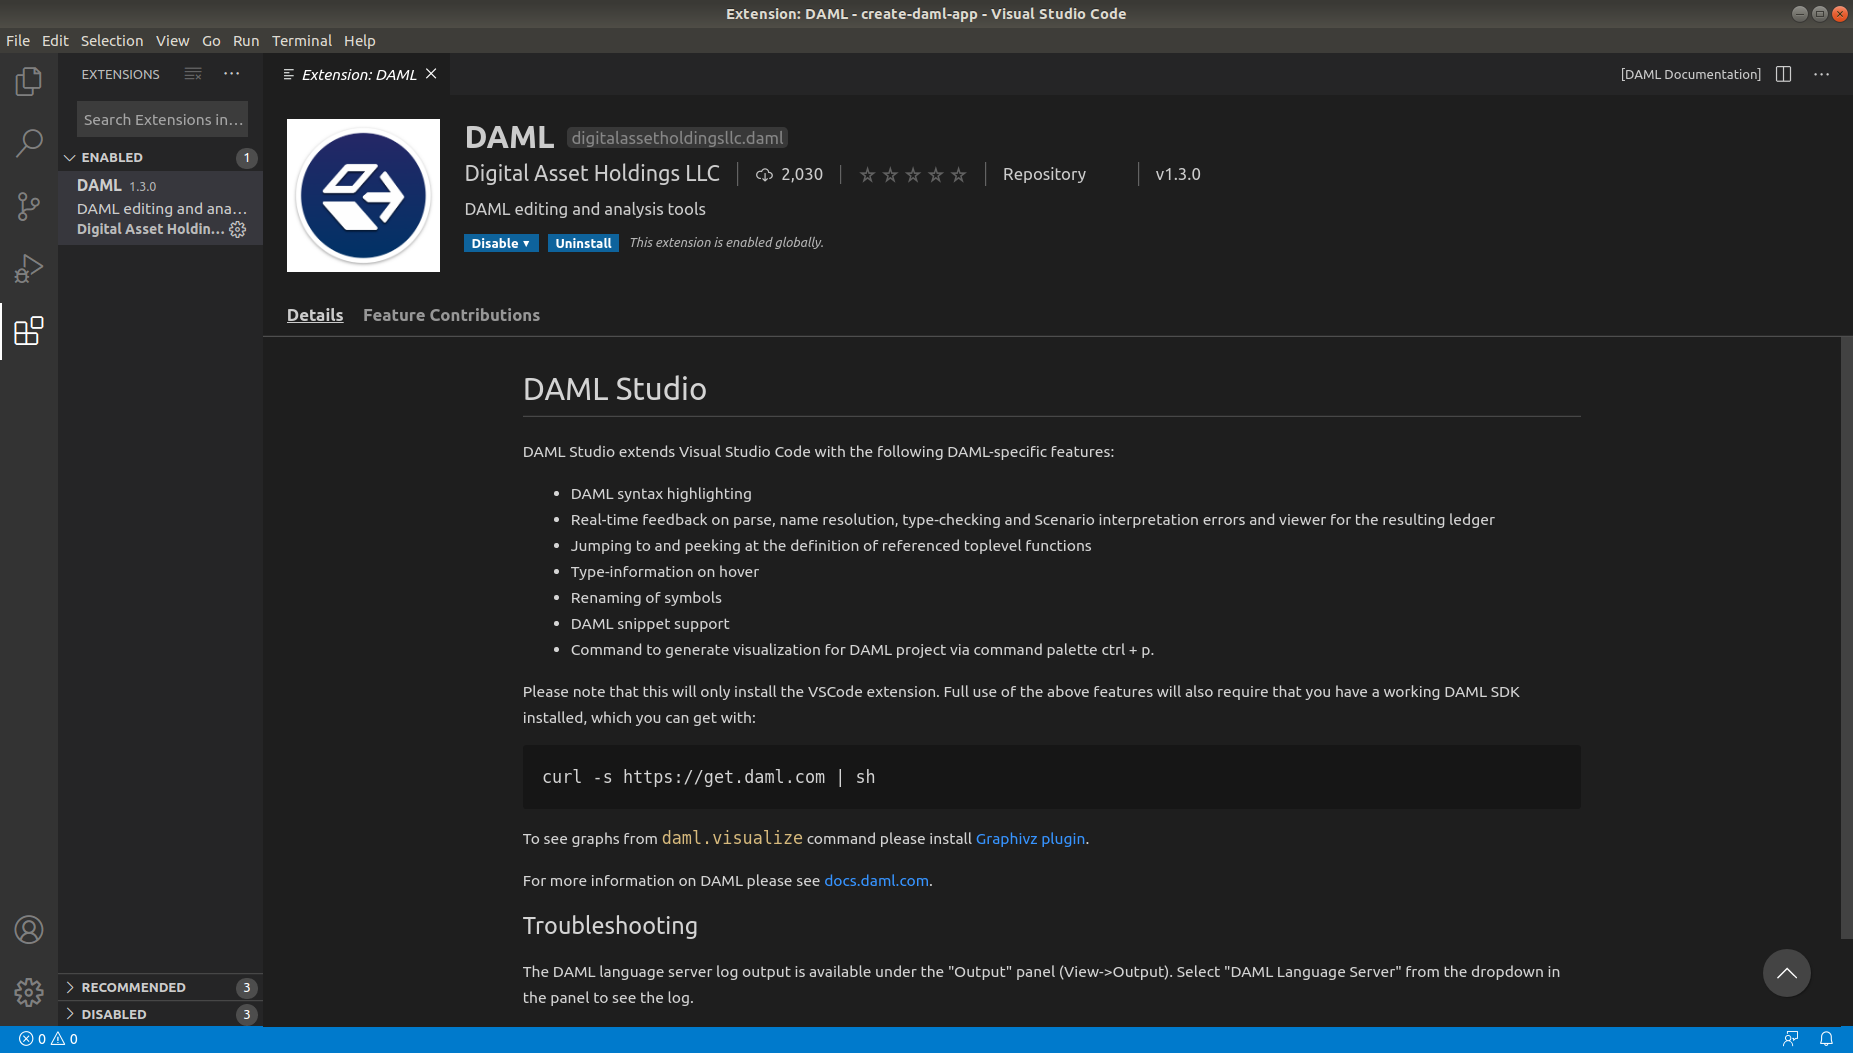 DAML Studio — DAML SDK 2019-08-07 documentation